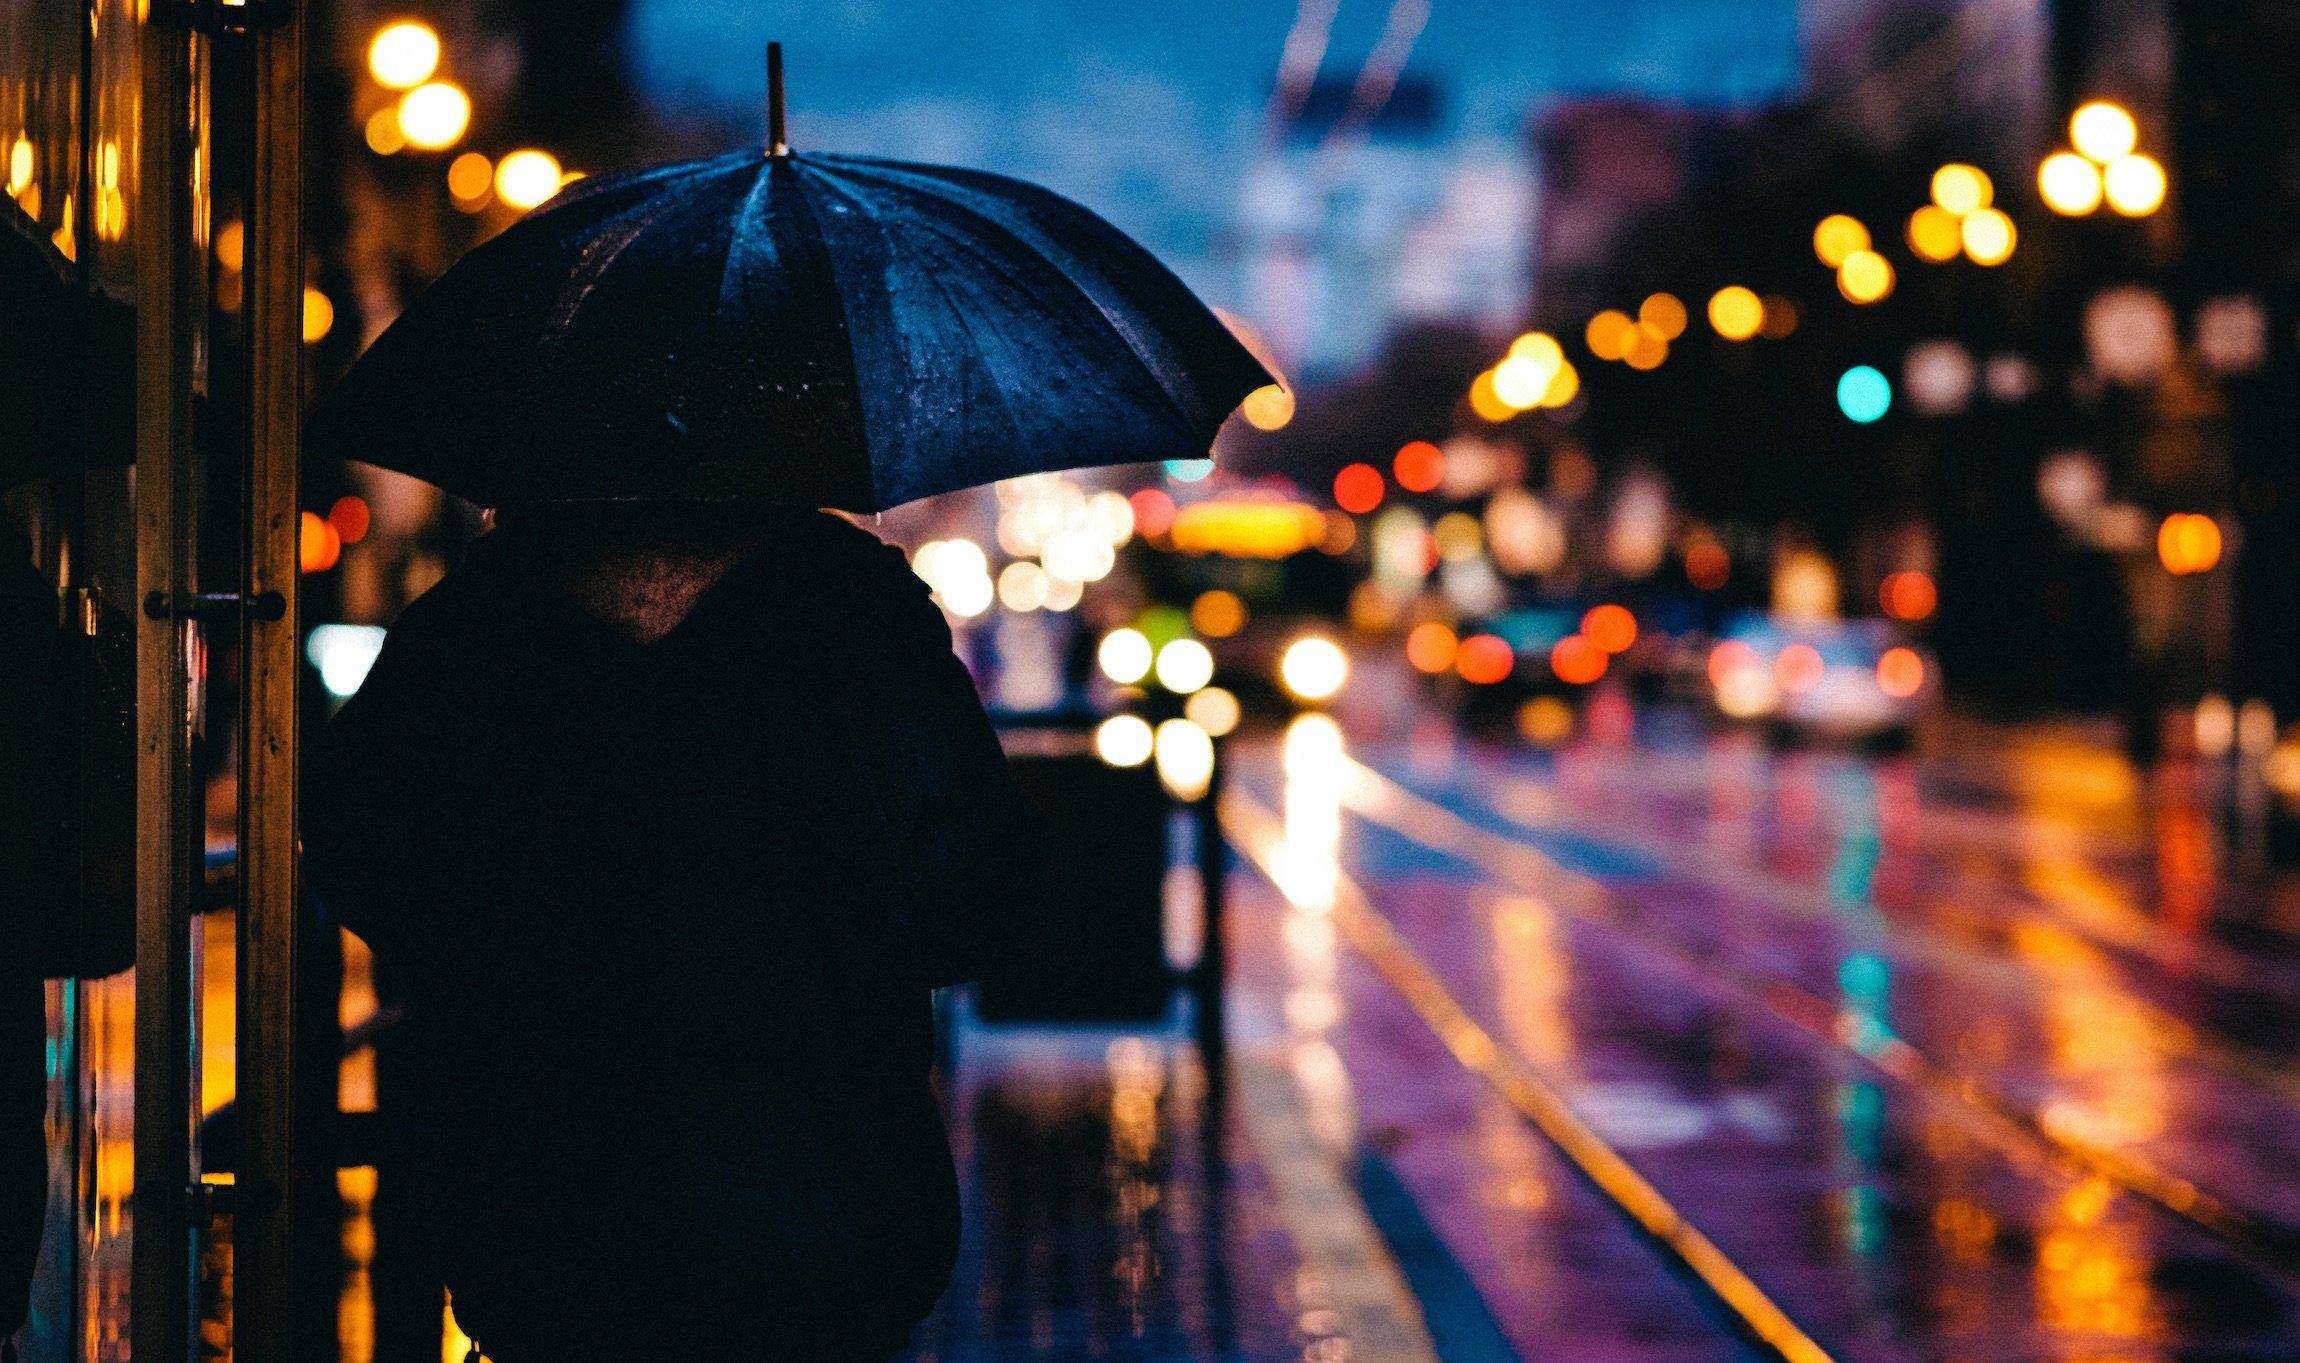 Man in a dark cloak under an umbrella on a dark night.